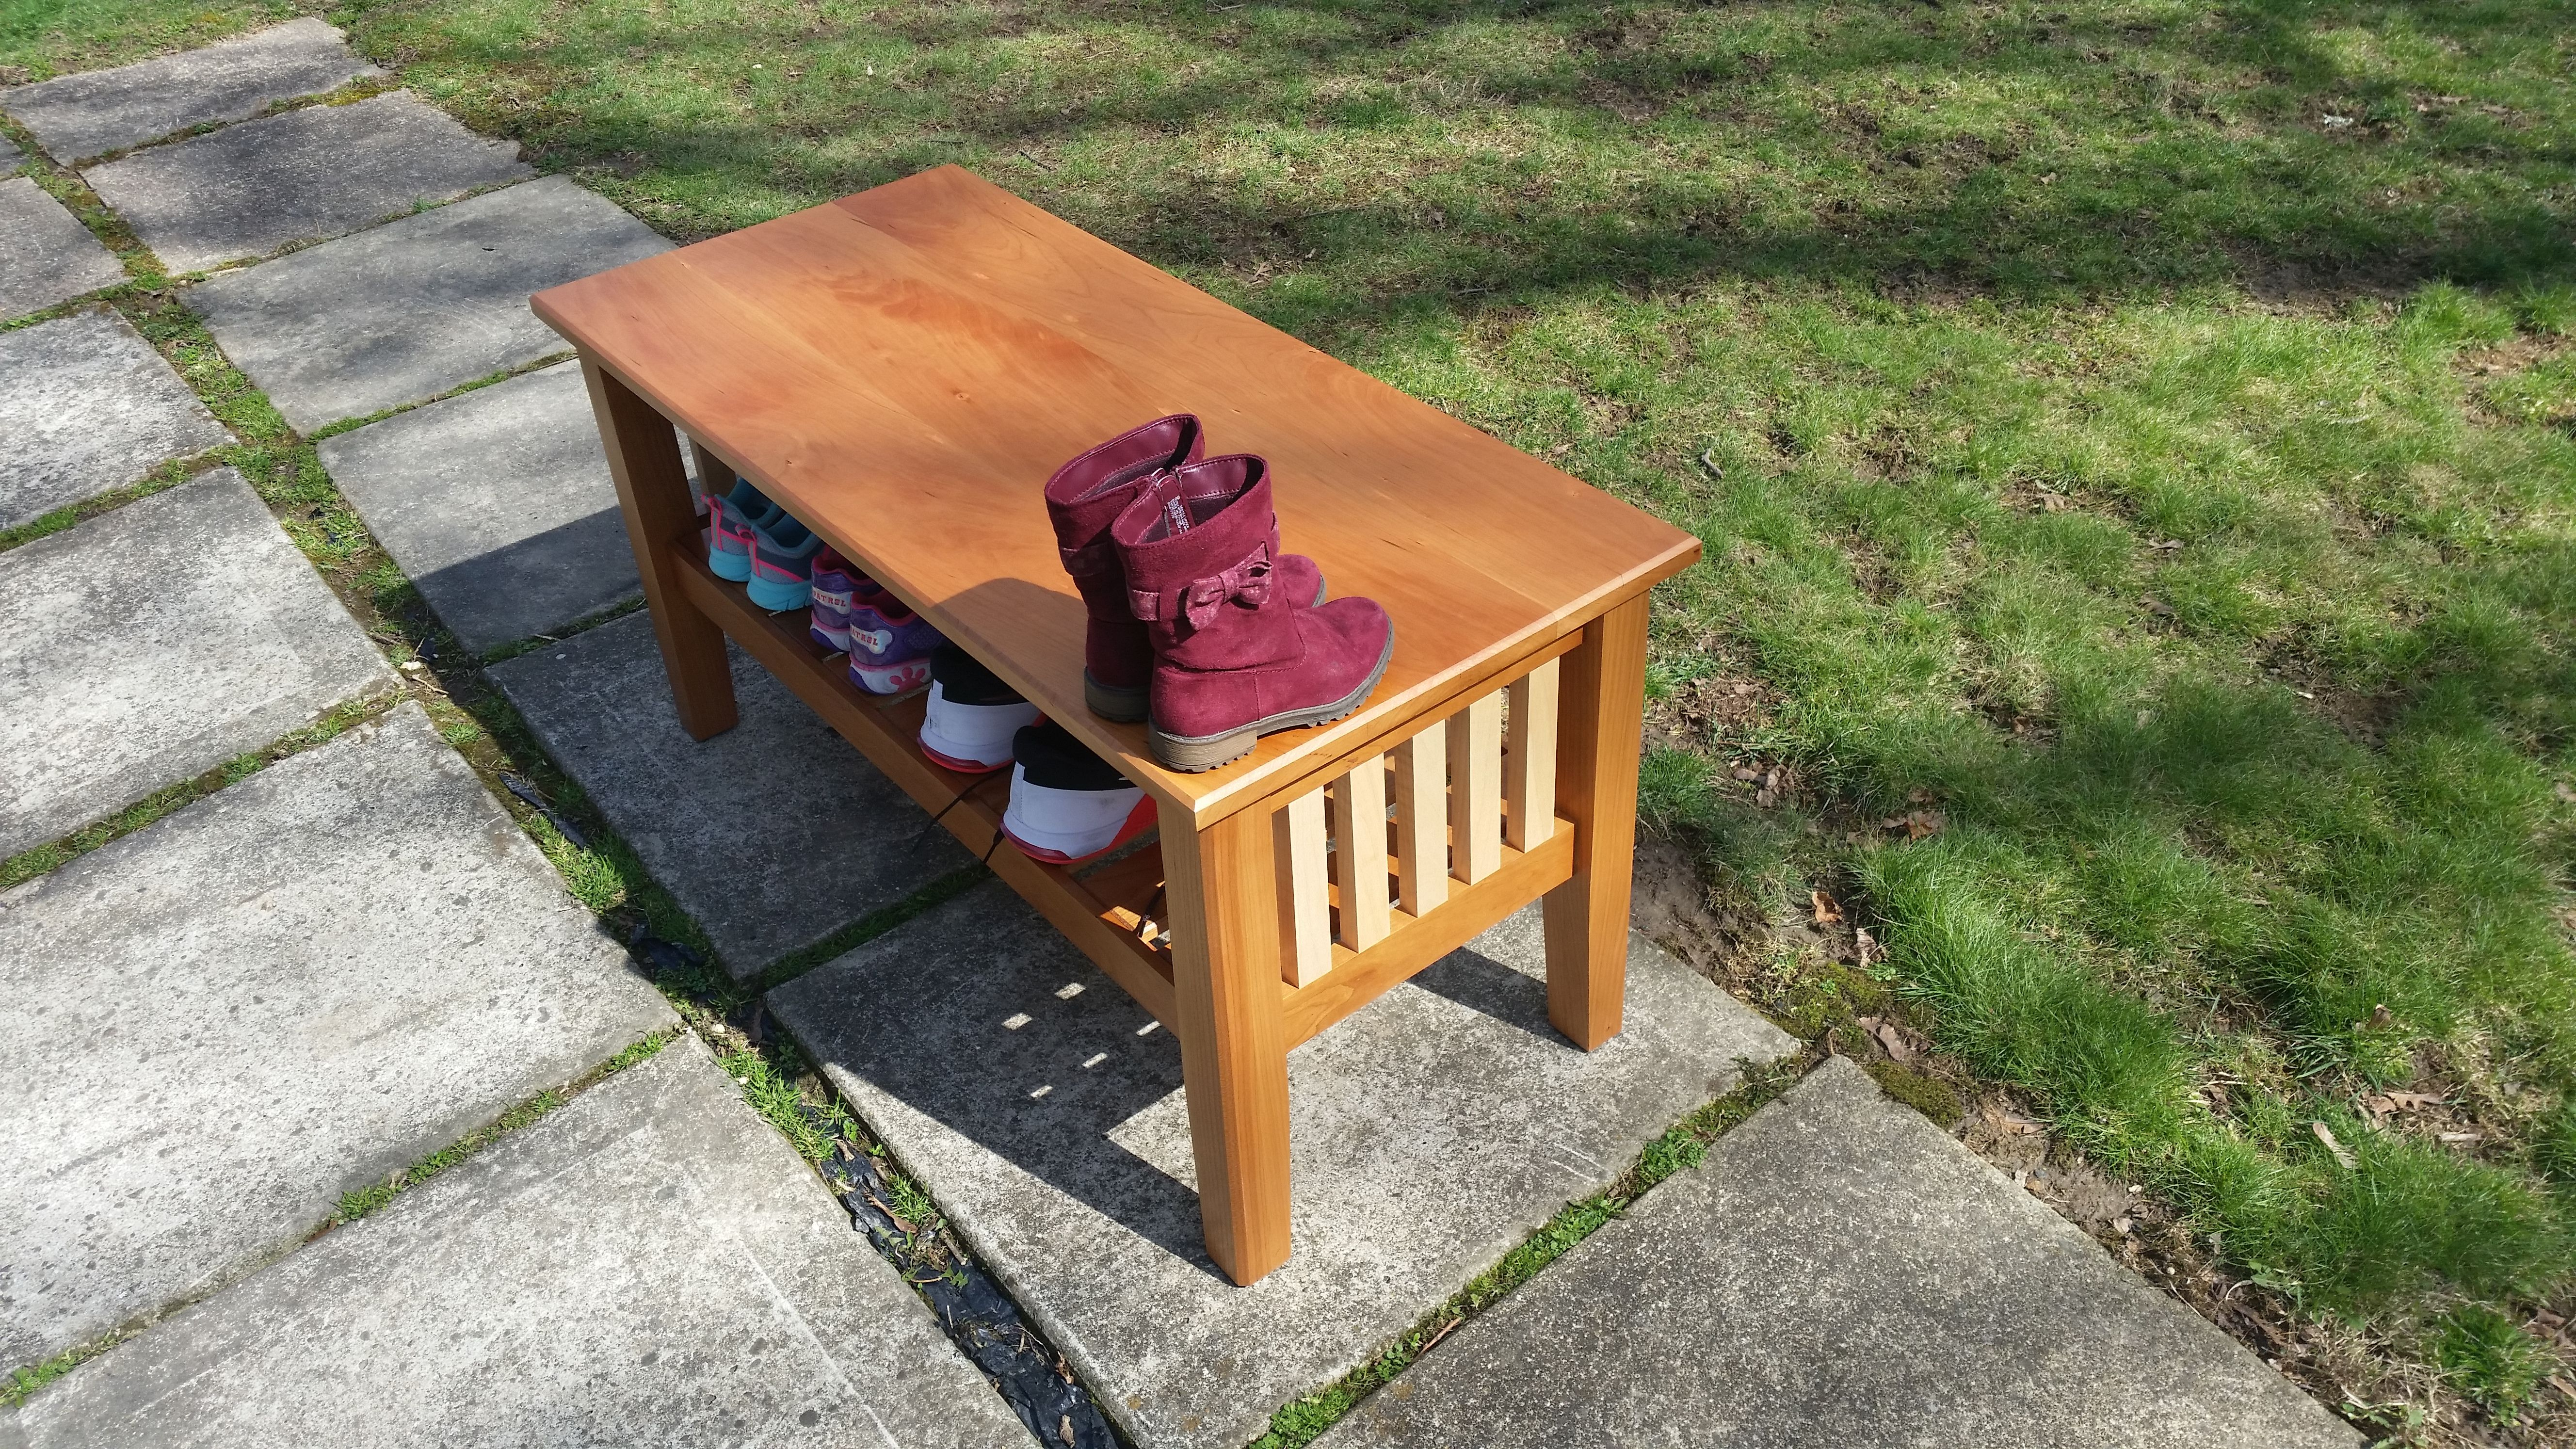 Tremendous Hand Made Entryway Shoe Storage Bench By Sunrise Woodshop Pdpeps Interior Chair Design Pdpepsorg